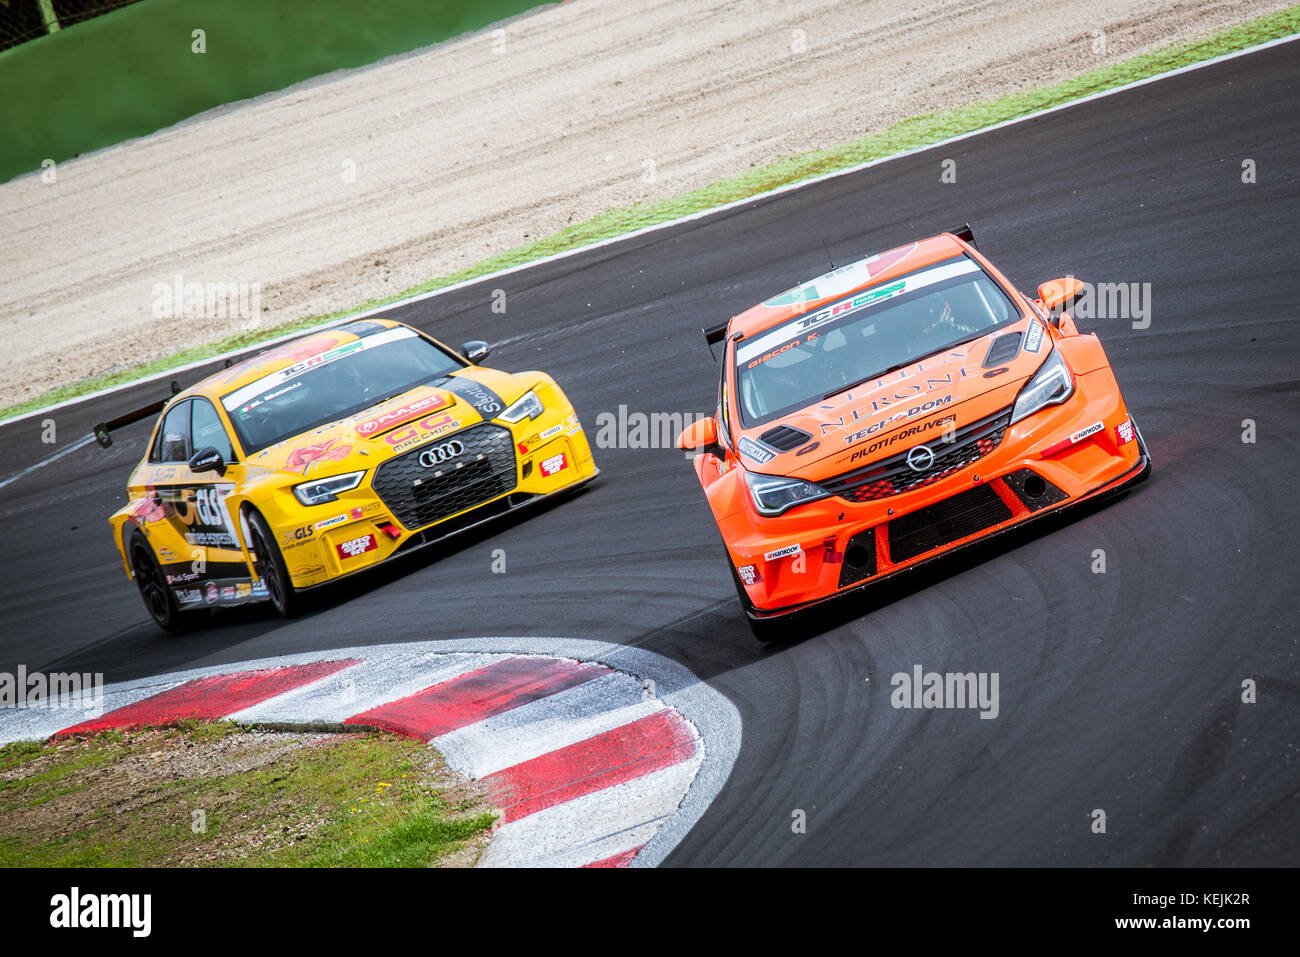 Vallelunga, Italy september 24 2017  Touring Audi rs3 and